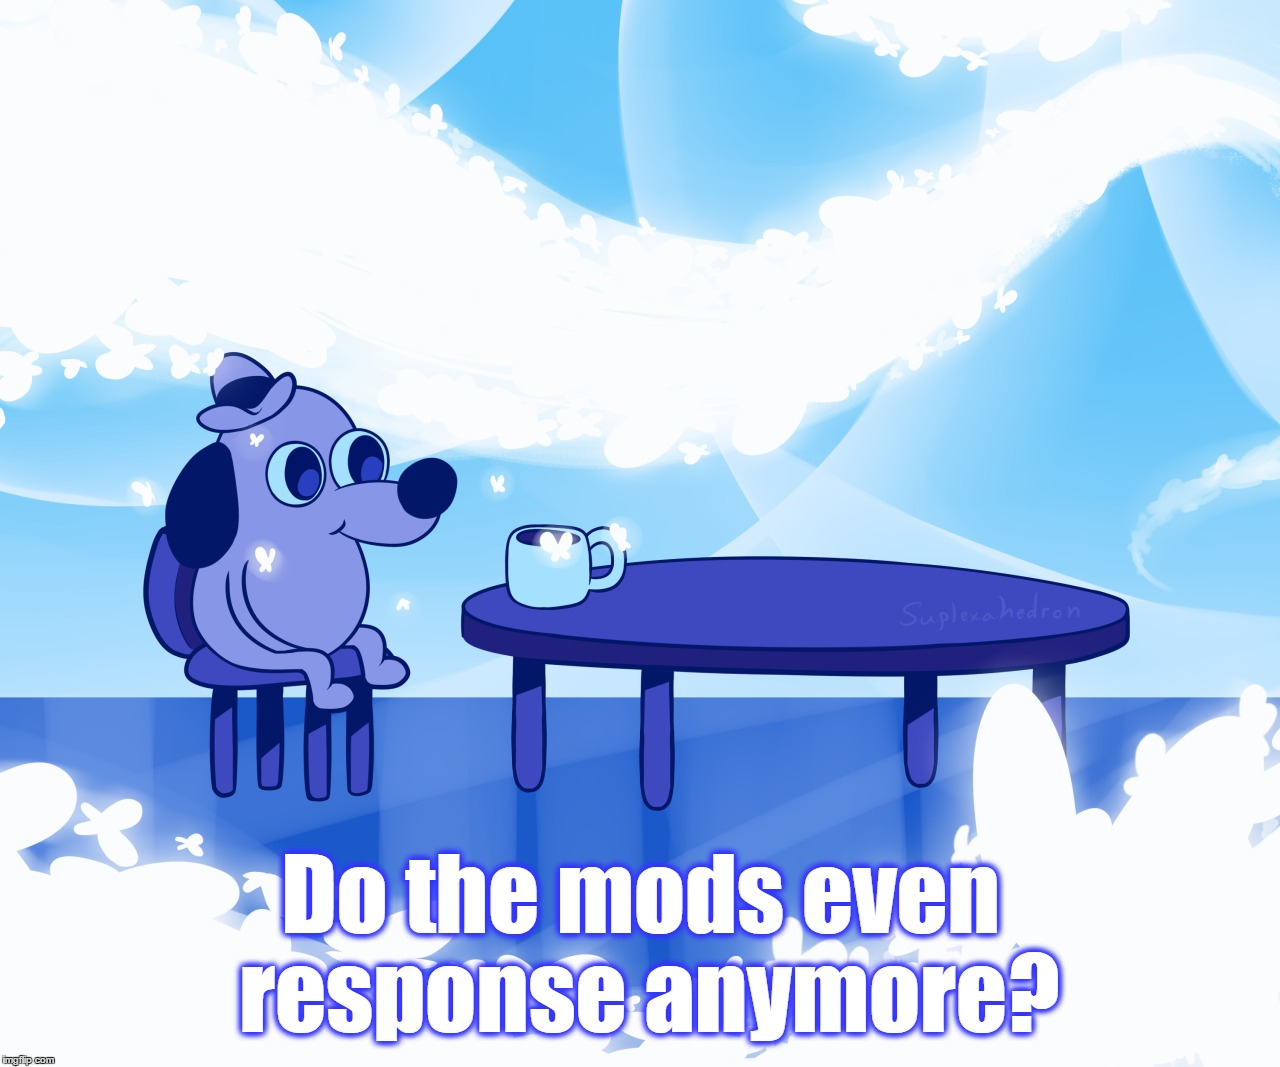 Do the mods even response anymore? | made w/ Imgflip meme maker